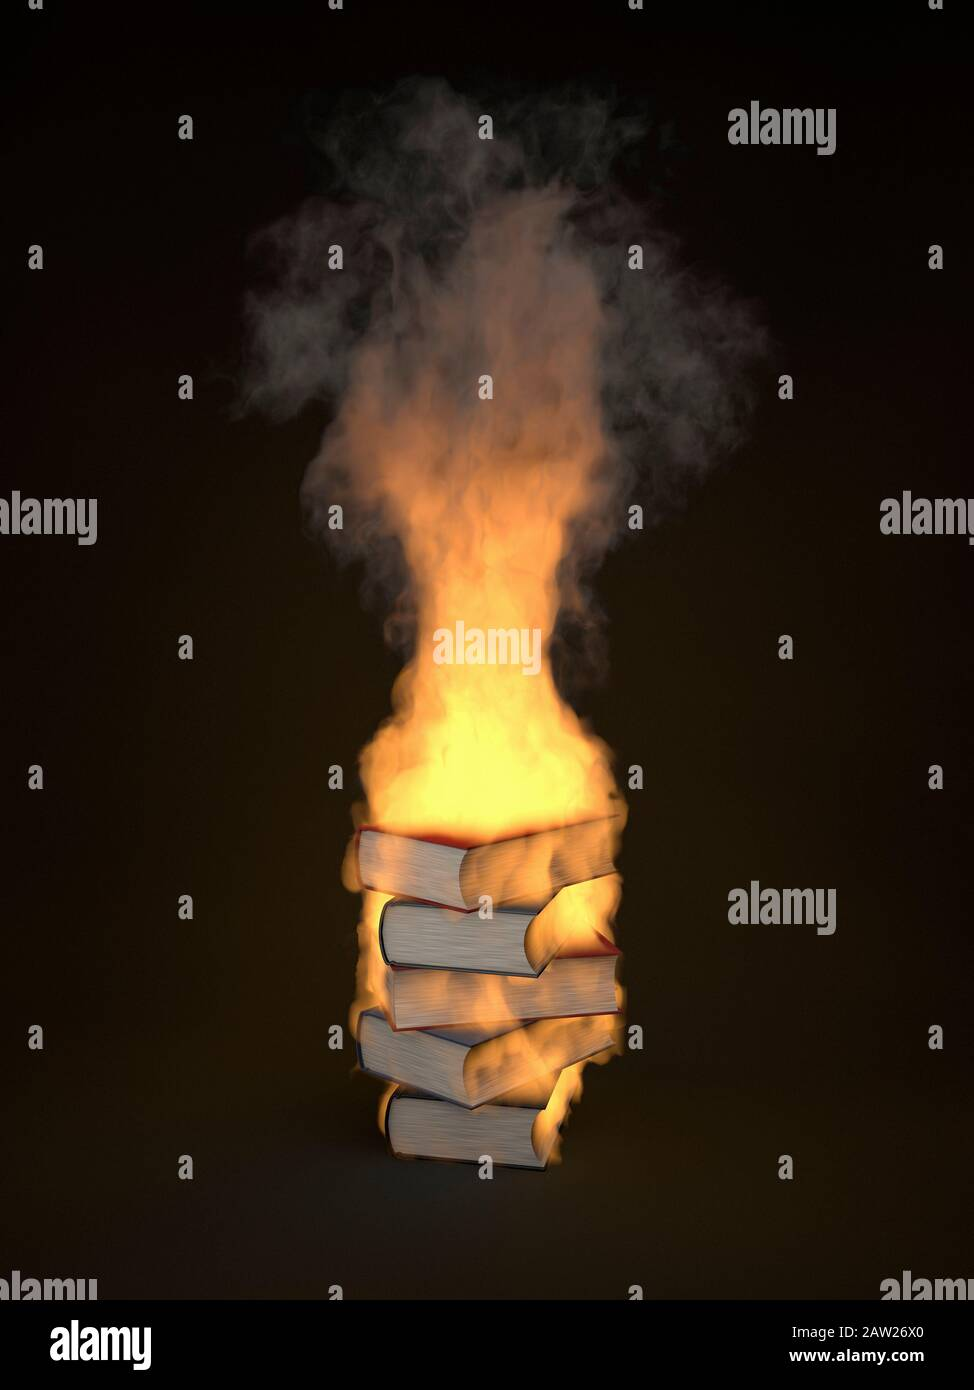 Pile of books burning, engulfed in flames Stock Photo